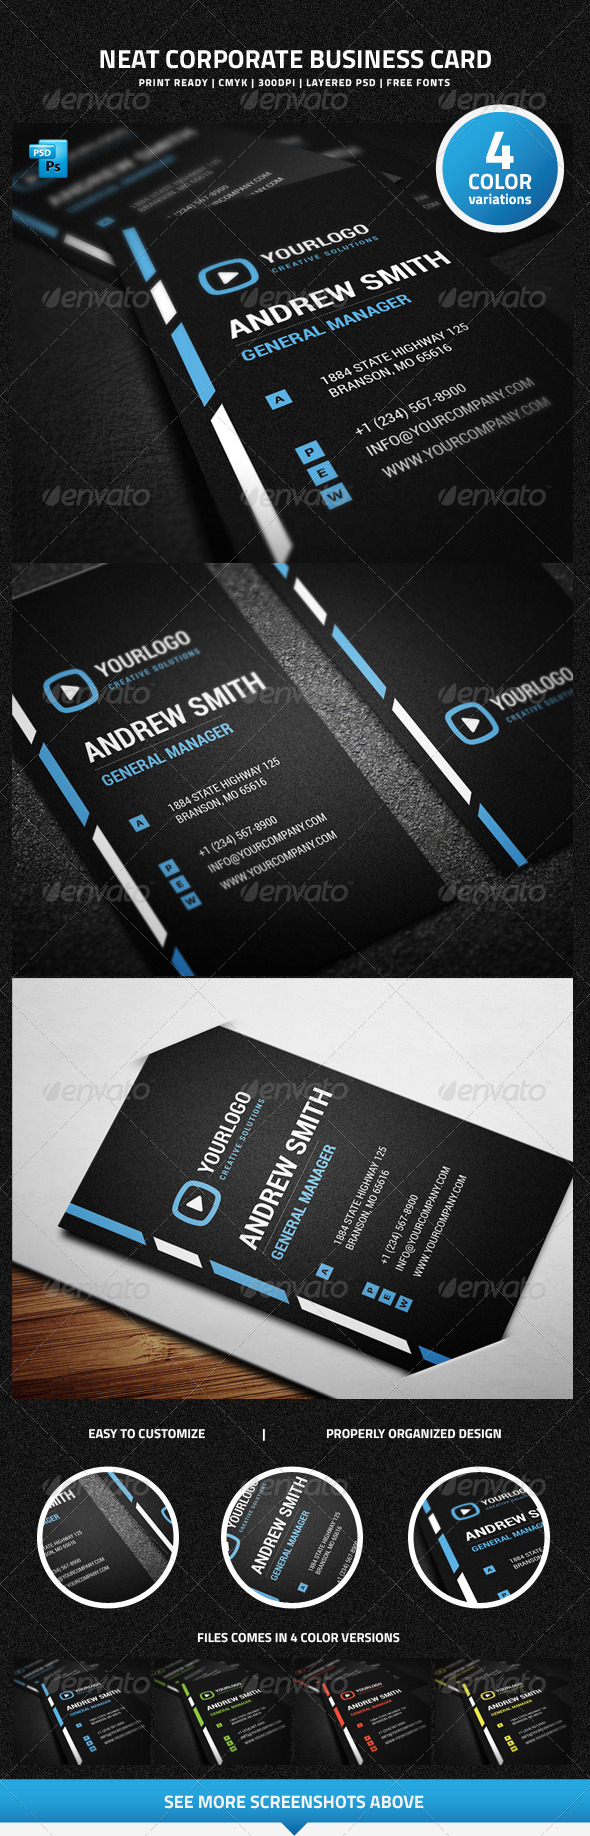 GraphicRiver Neat Corporate Business Card 6477201